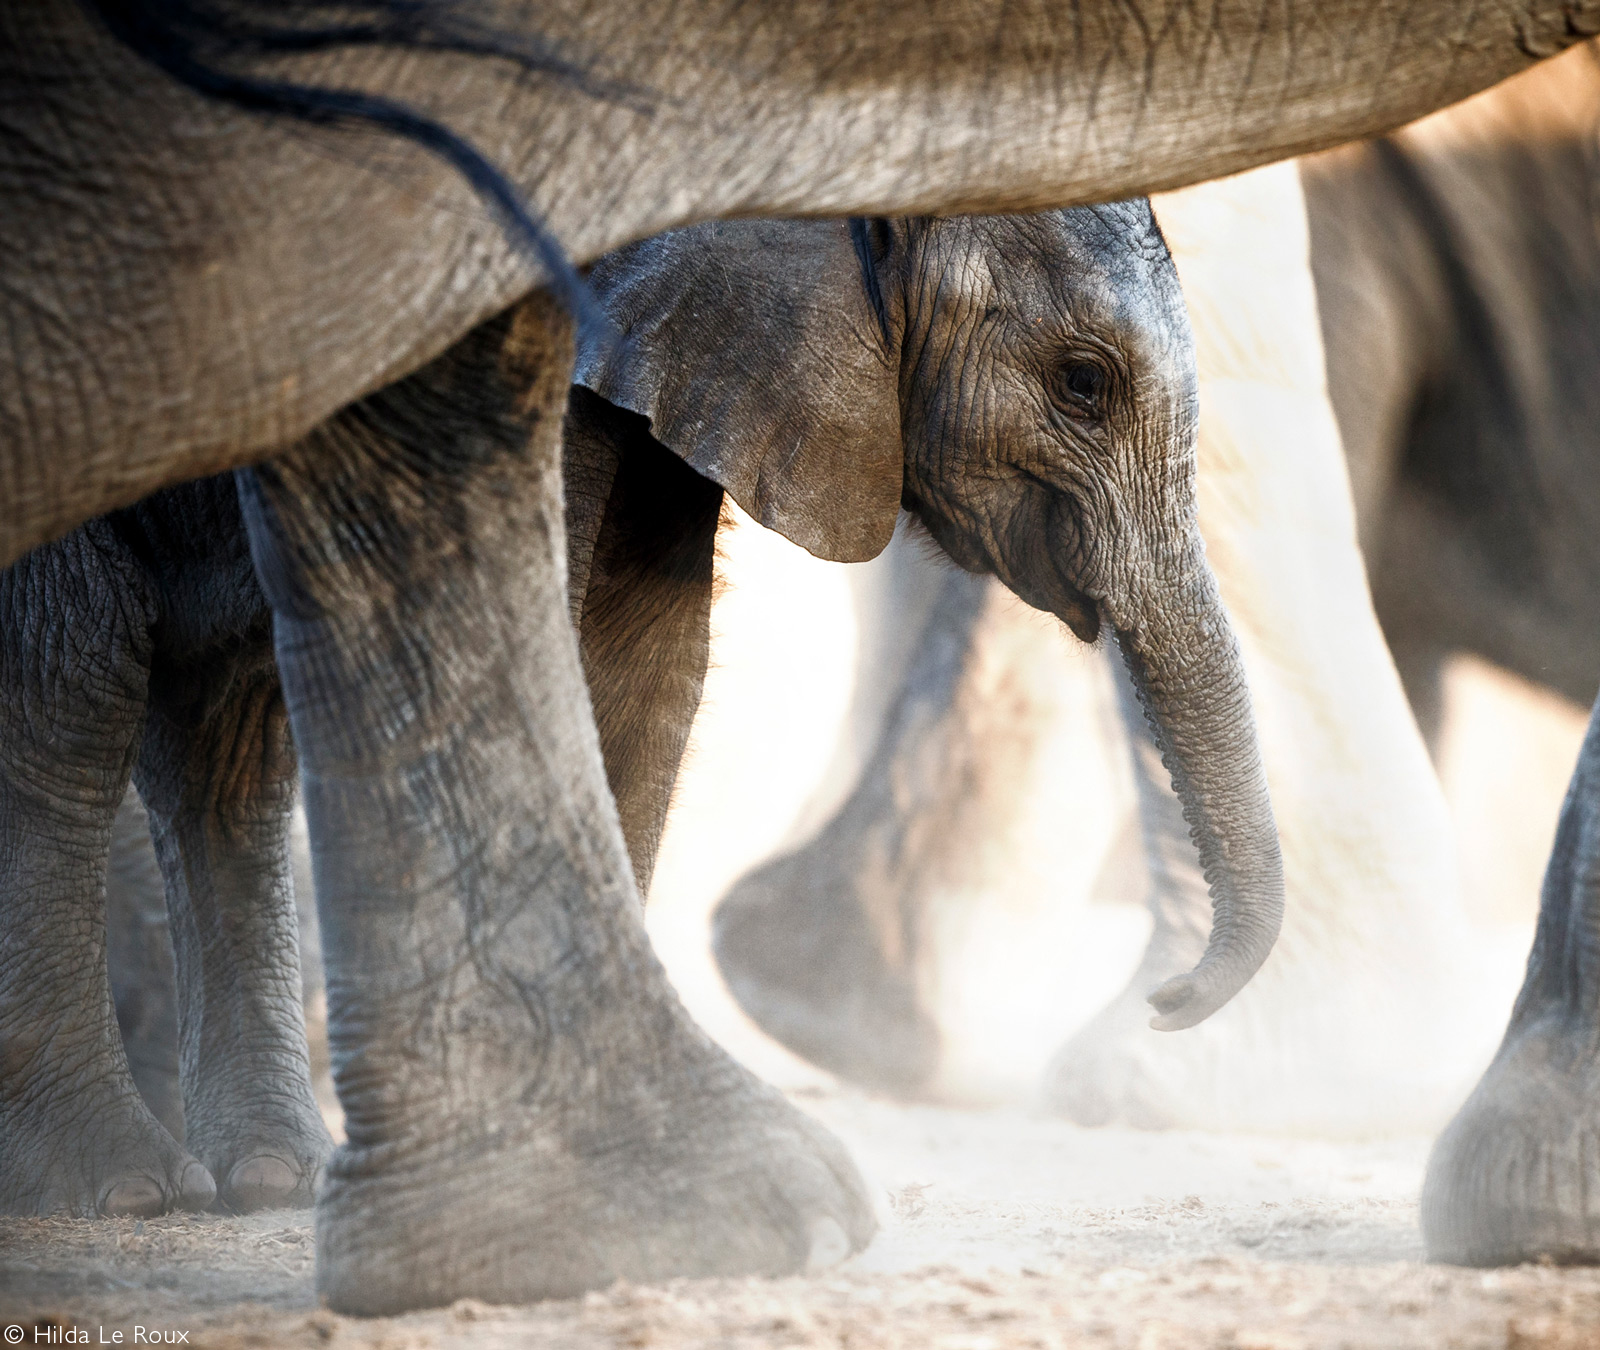 Thirsty elephants come to drink at a waterhole. Kruger National Park, South Africa © Hilda Le Roux